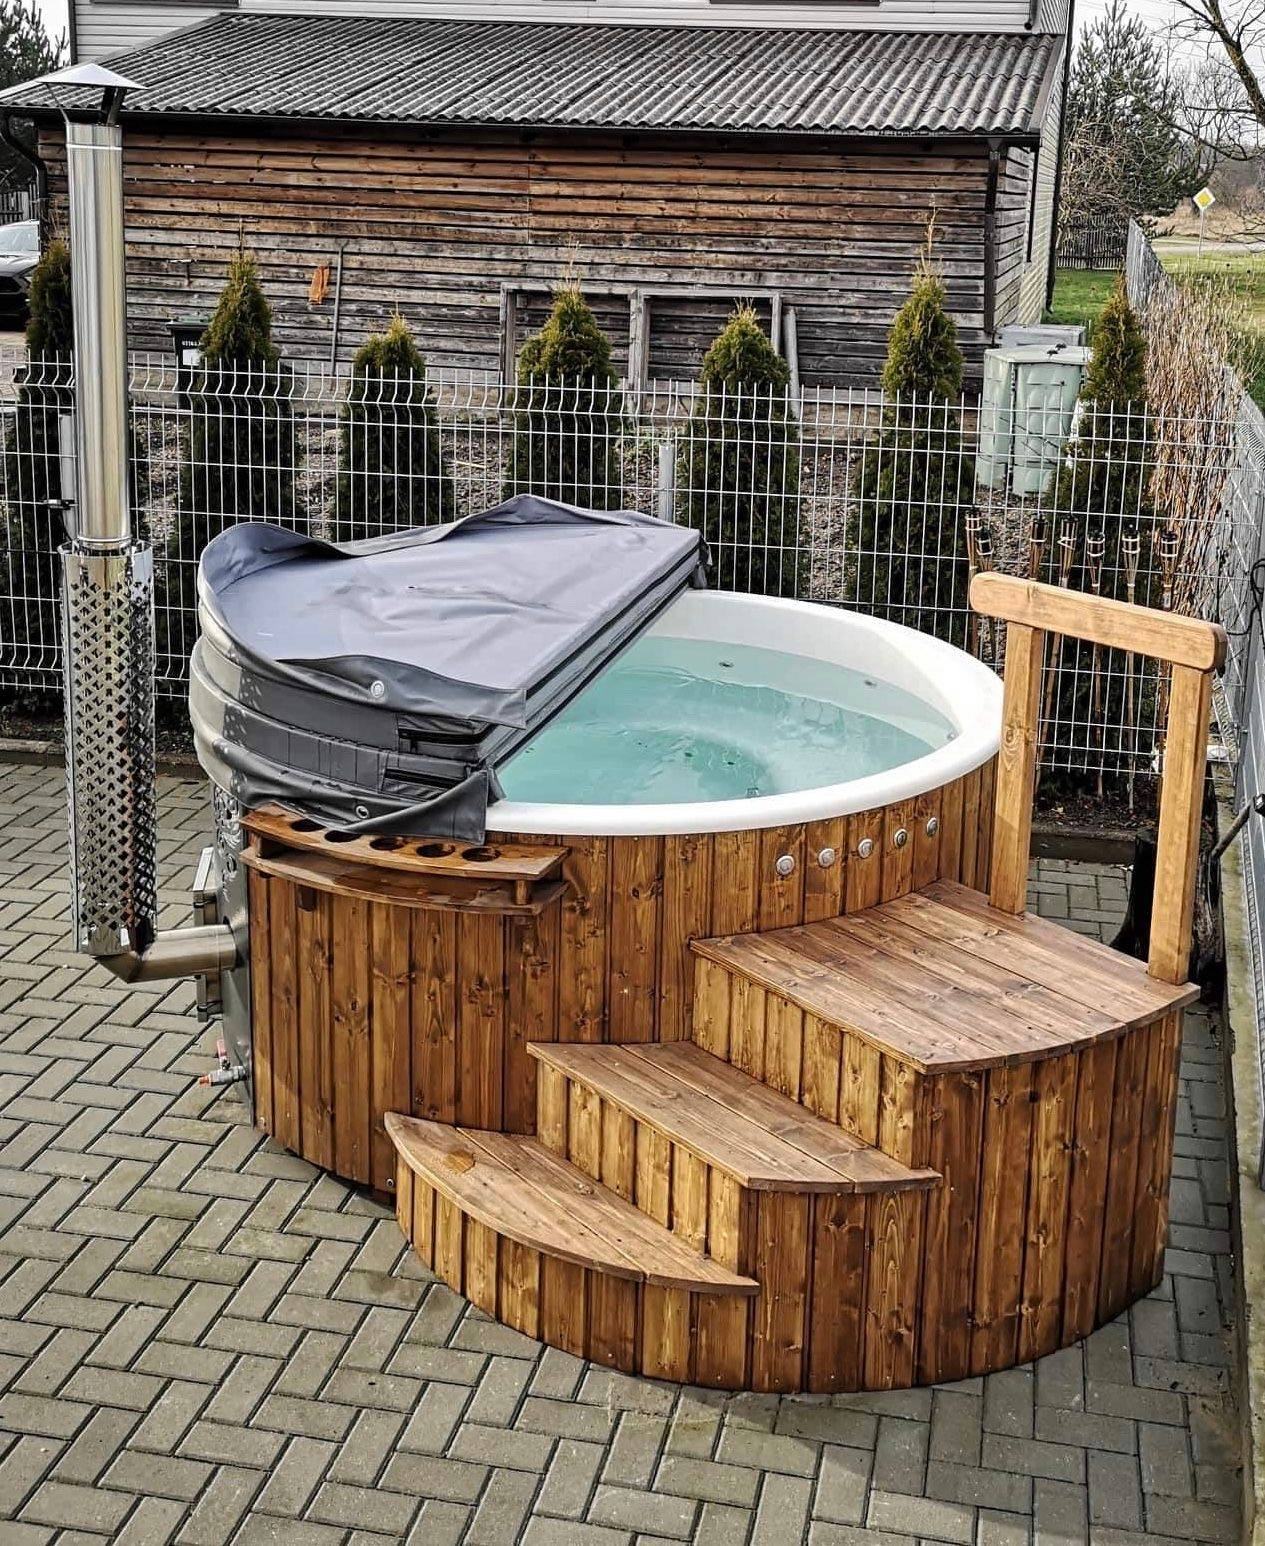 Costwold Wood Fired Eco Tub - The Burford